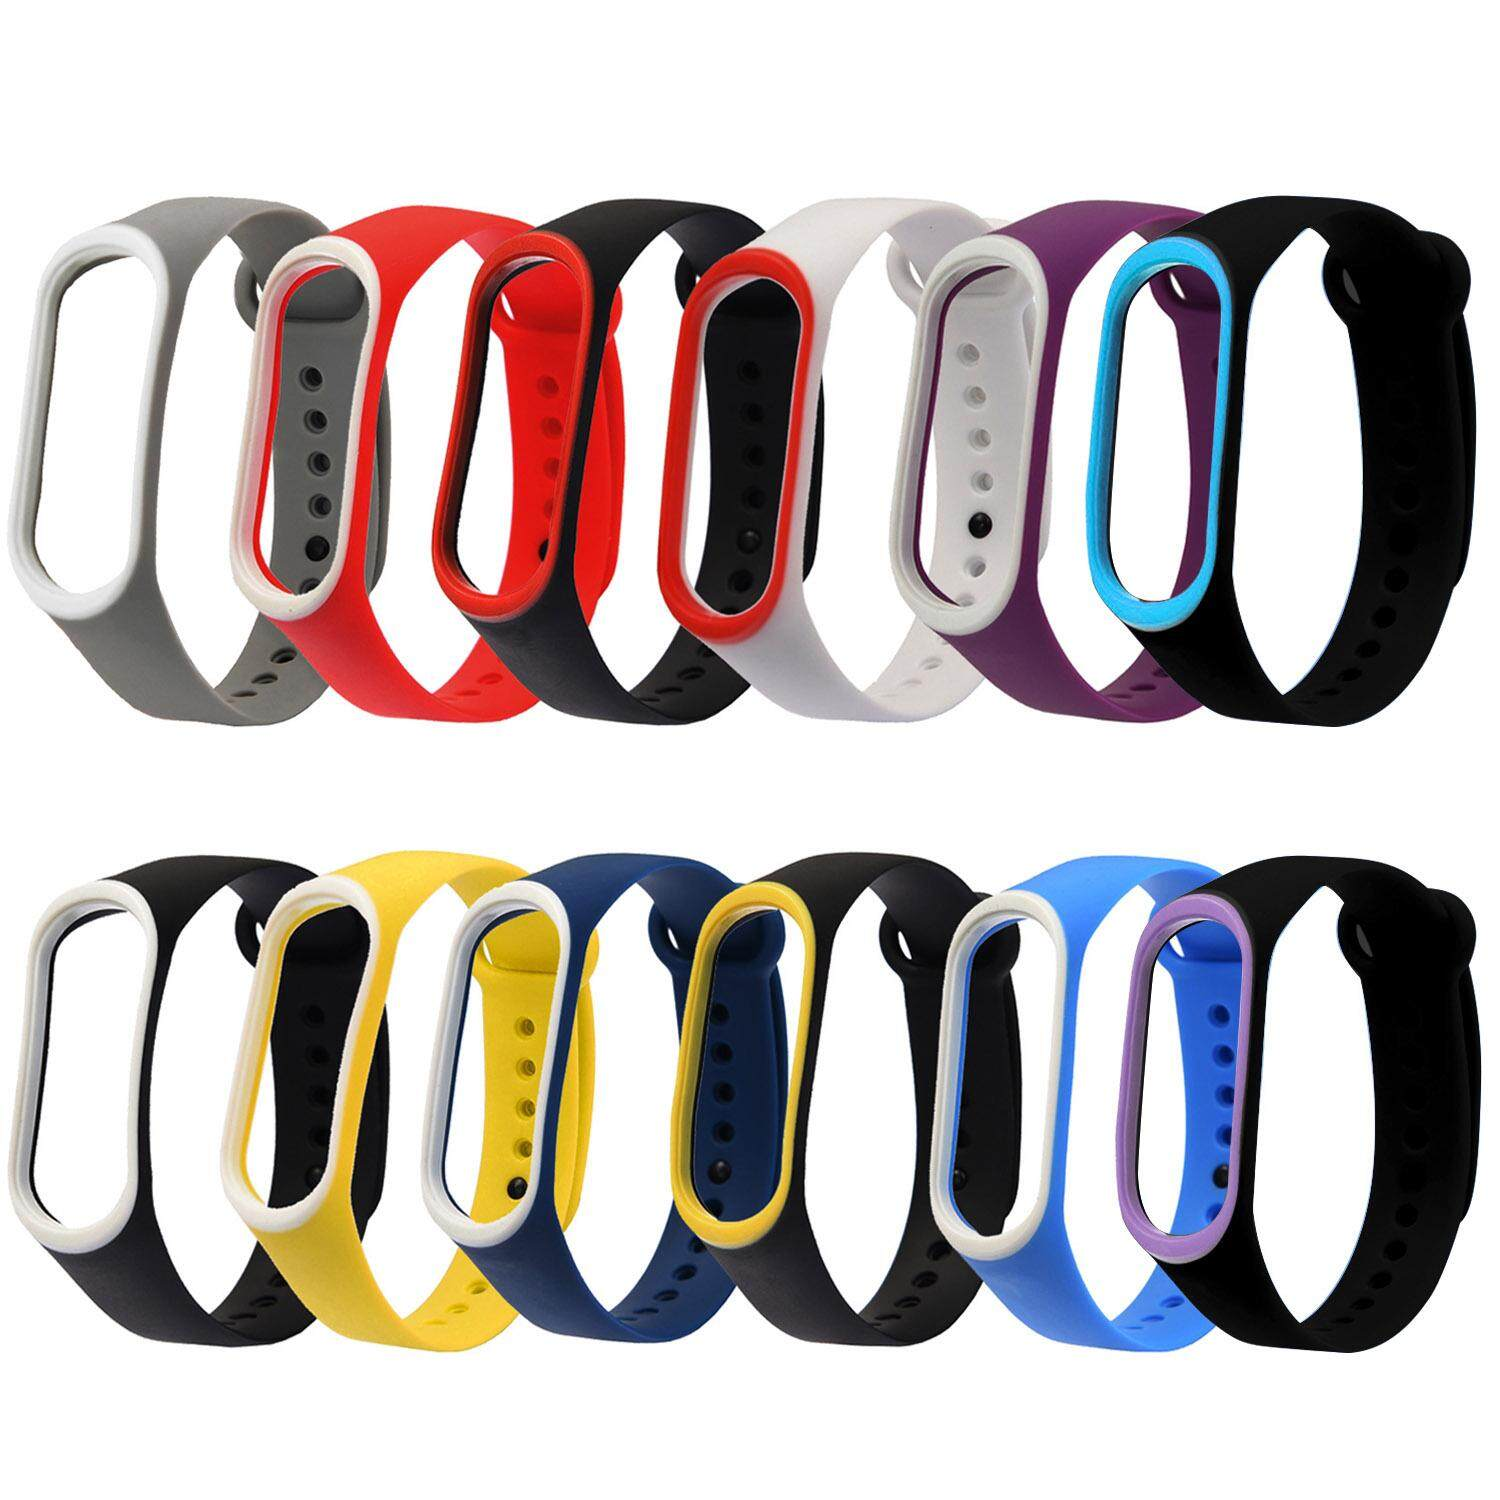 12pcs Assorted Colors Fashion Double-Color Replacement Wristband Watch Strap Bracelet Smart Band Compatible With Xiaomi Xiao Mi Miband Mi Band 3 By Stoneky.